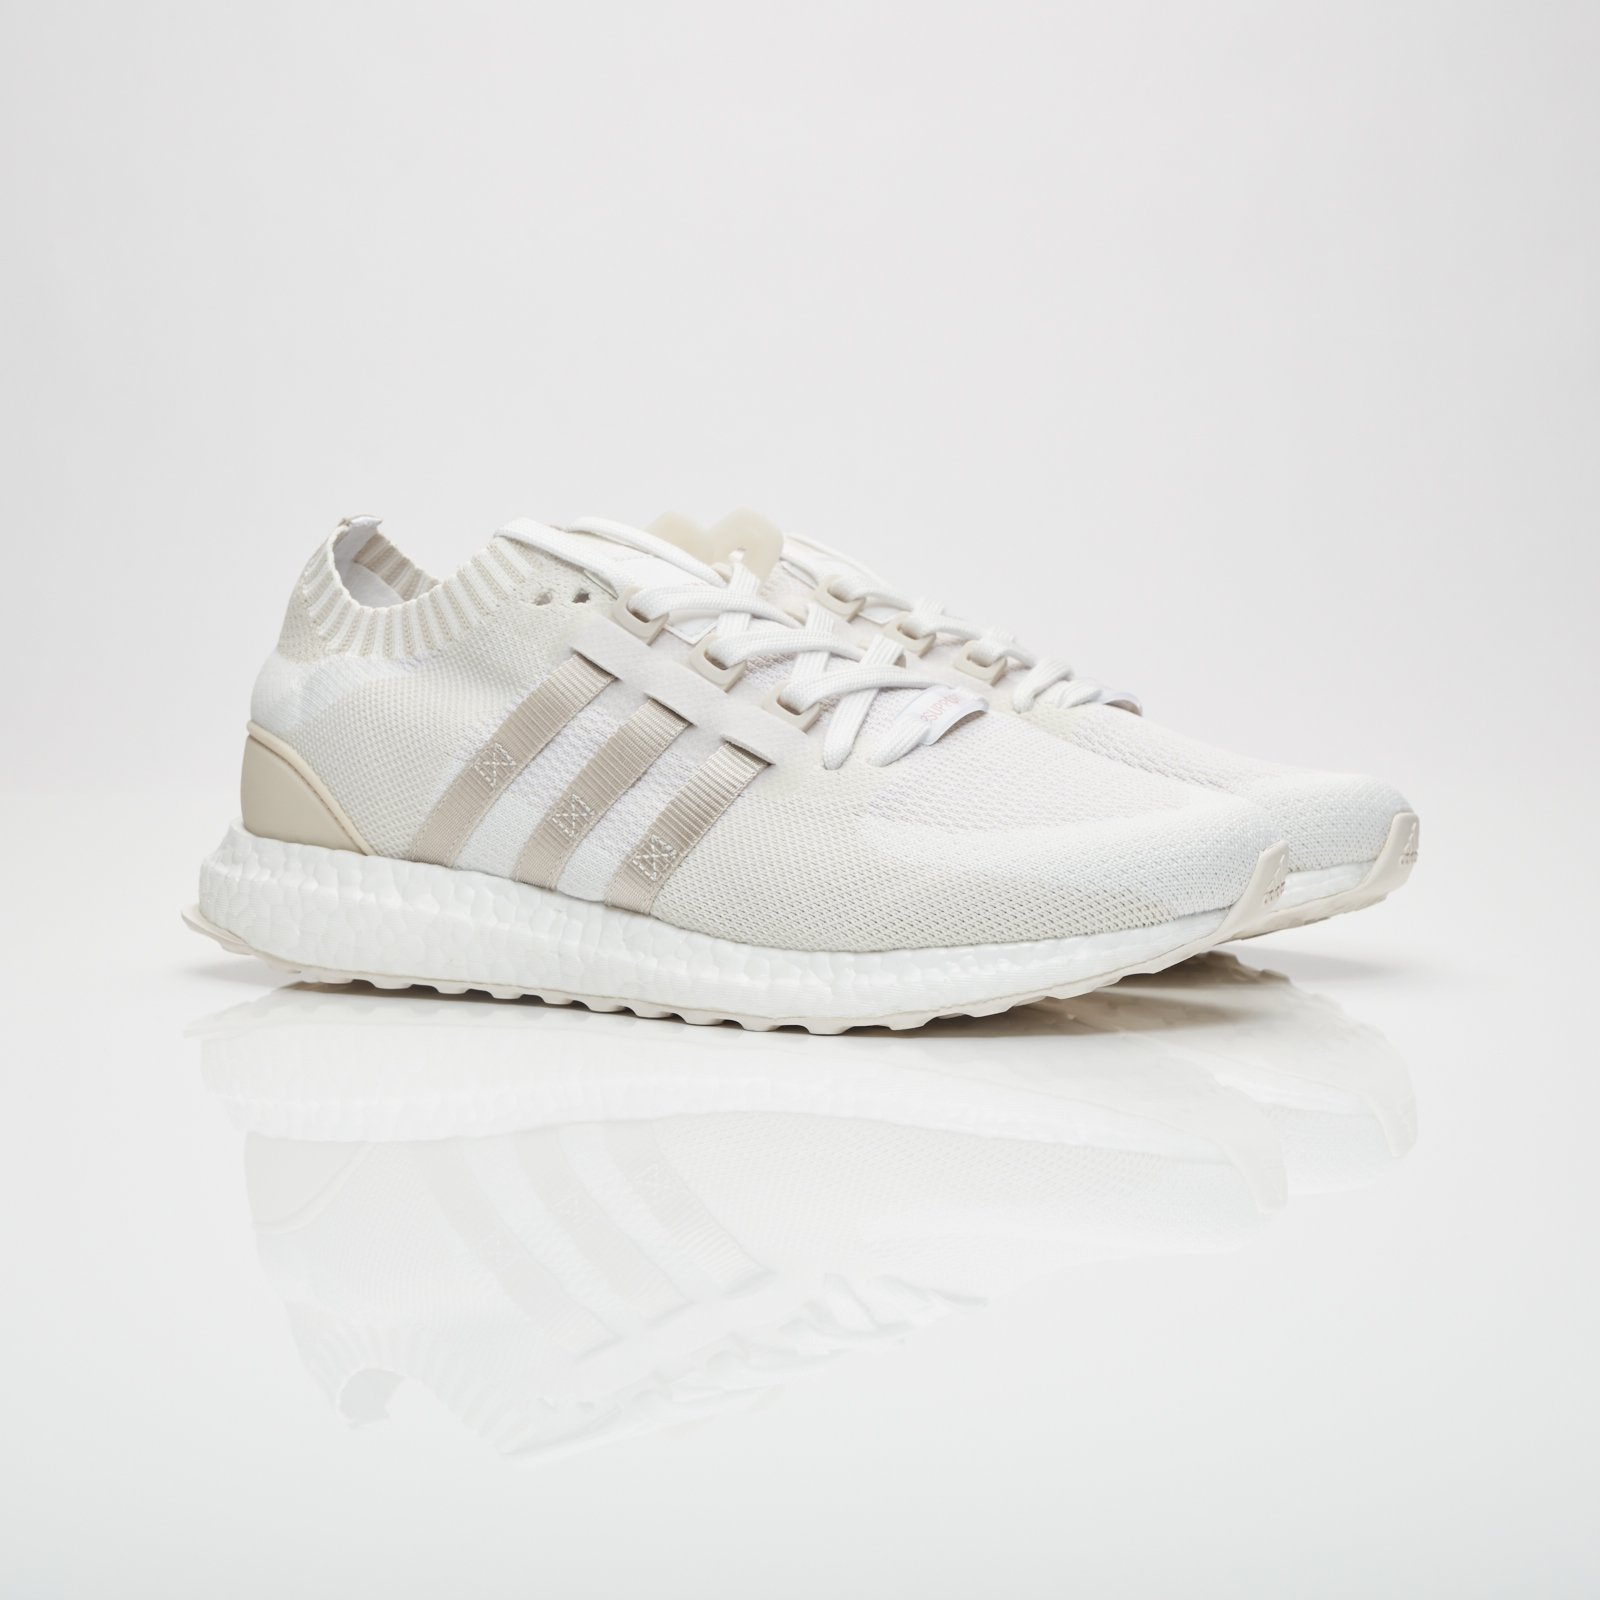 detailed look 56a8a e798a adidas EQT Support Ultra Primeknit - Cq1894 - Sneakersnstuff ...